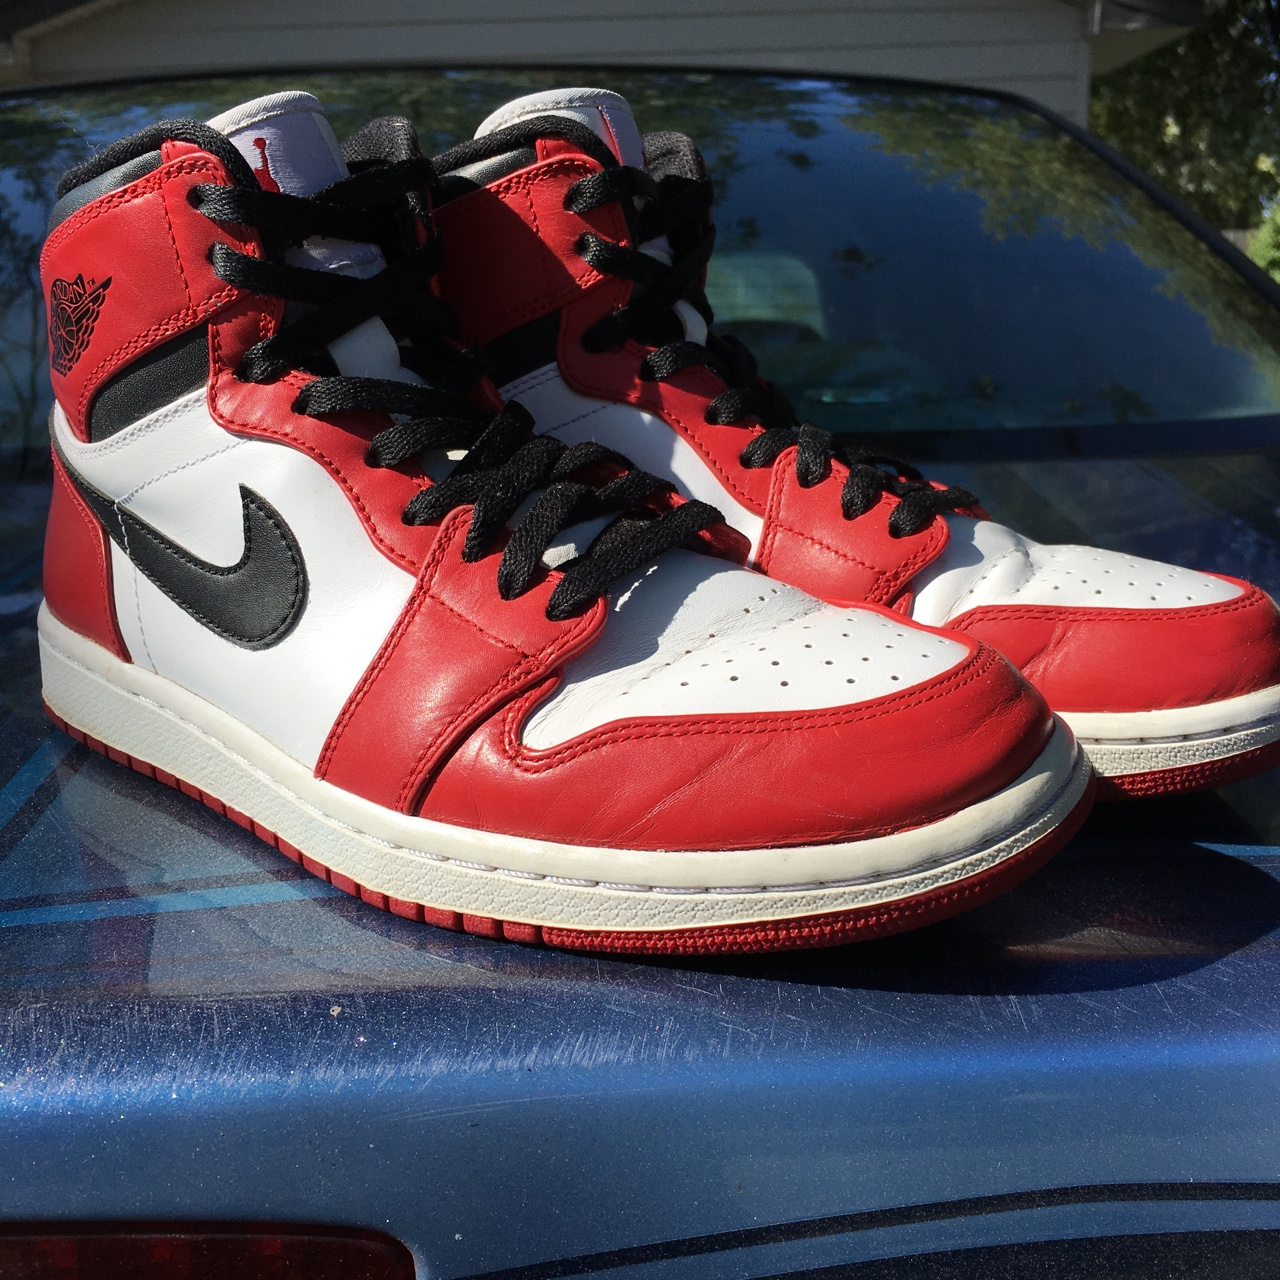 new arrival 98f08 d61f6 Nike Air Jordan 1 Chicago 2013 Some creases. Will... - Depop